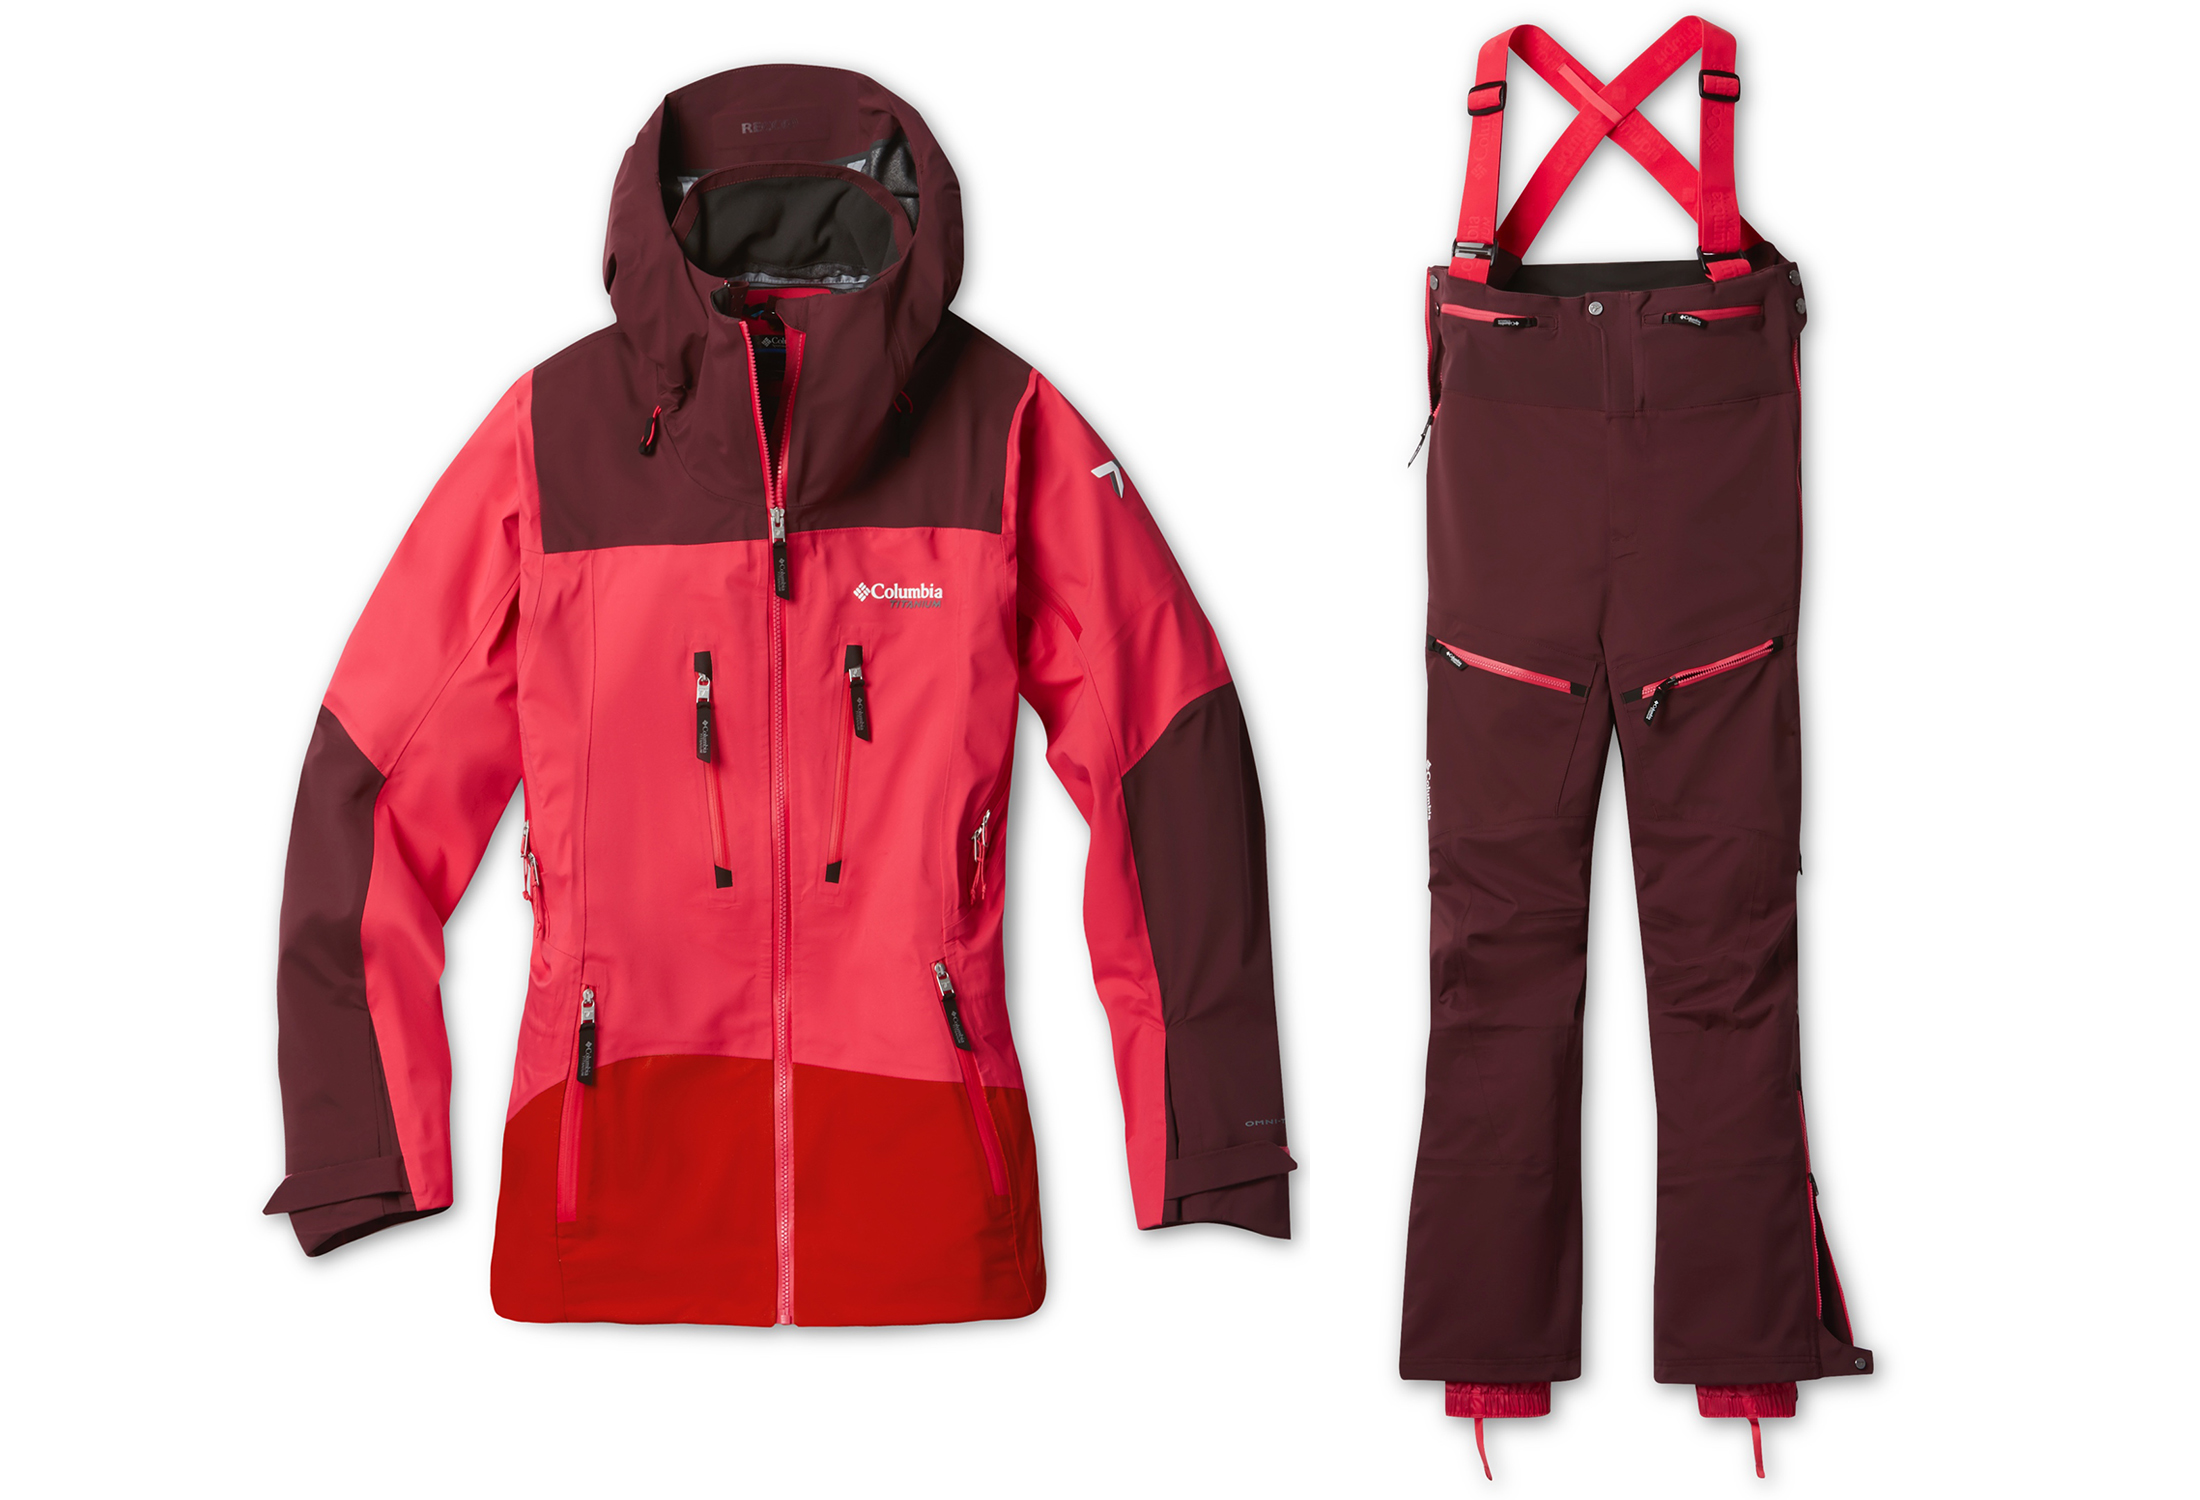 Columbia Peak pursuit ski kit